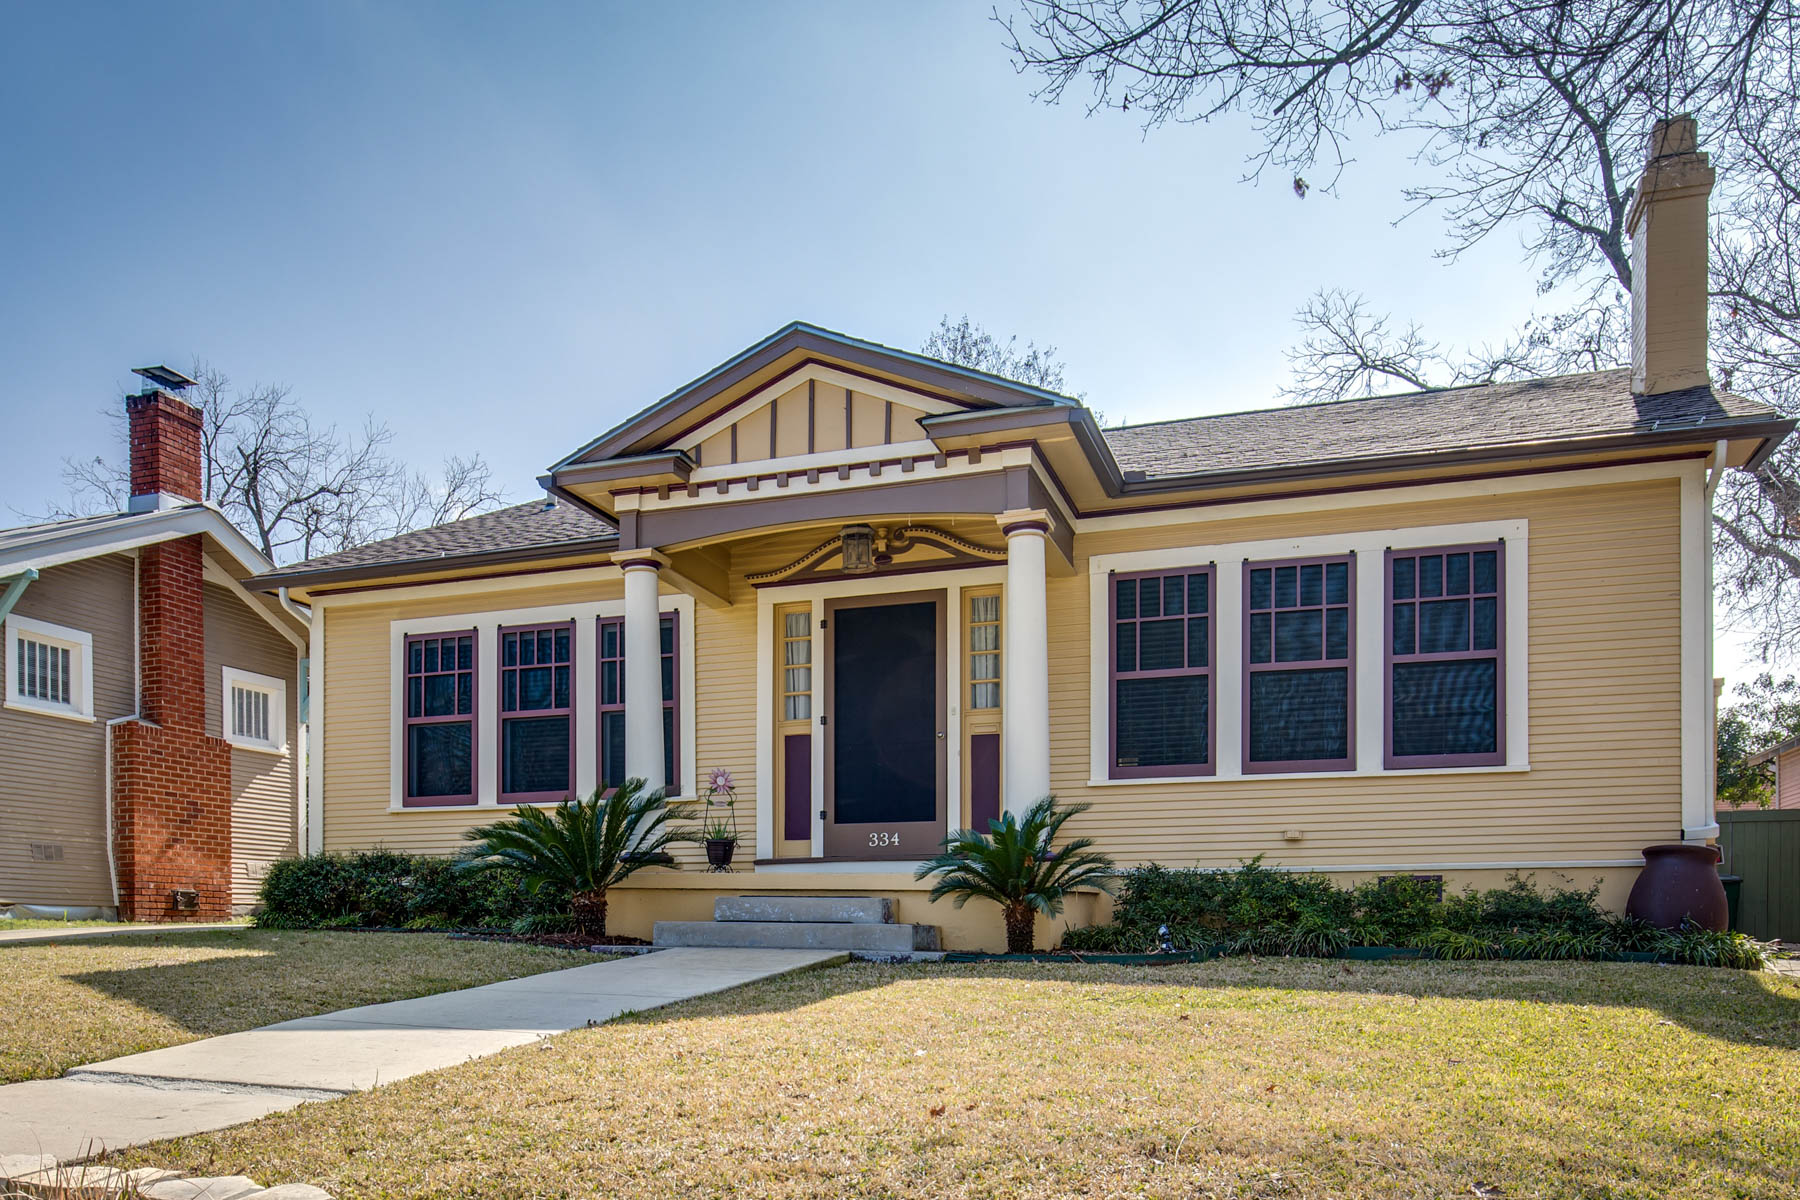 Single Family Home for Sale at Beautiful Home in Wonderful Mahncke Park 334 Thorman Pl San Antonio, Texas 78209 United States